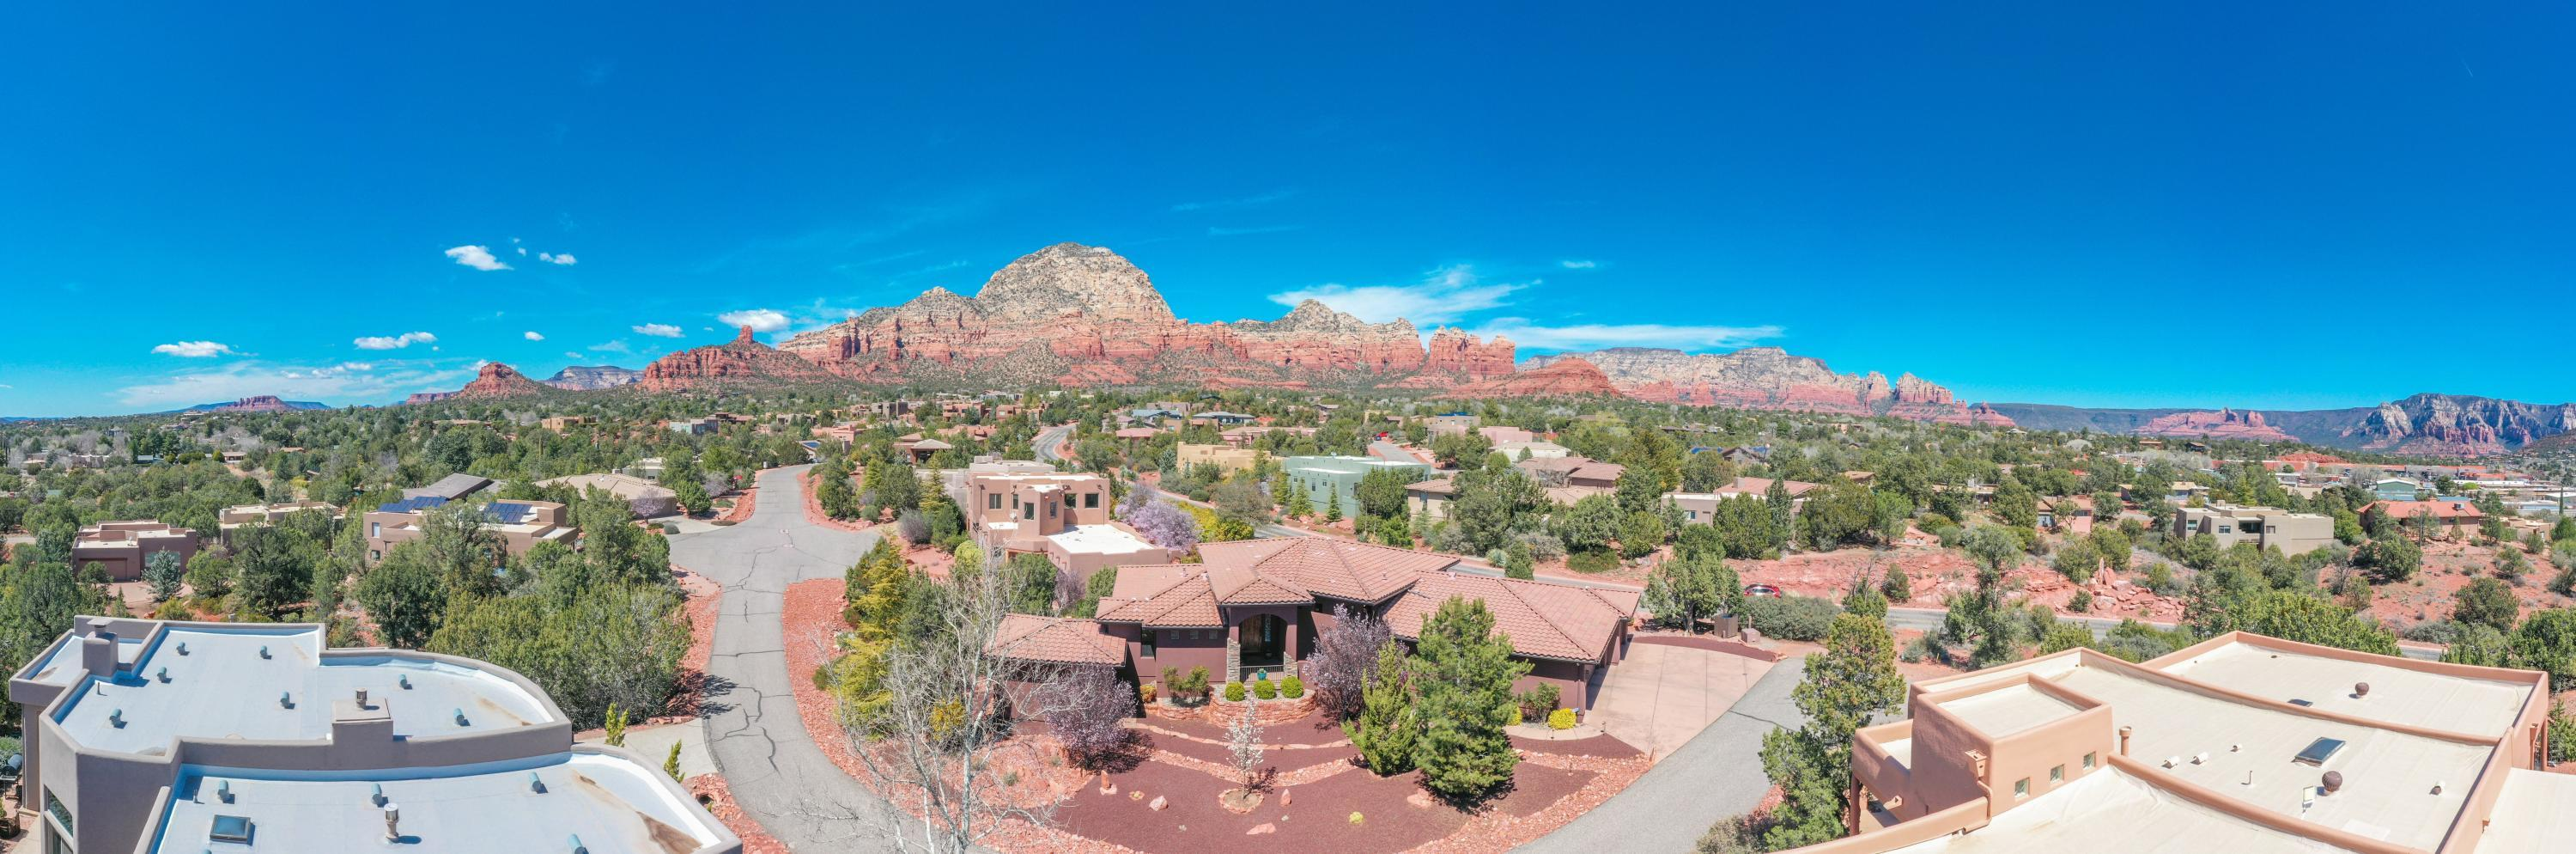 85 Whitetail Lane Sedona, AZ 86336